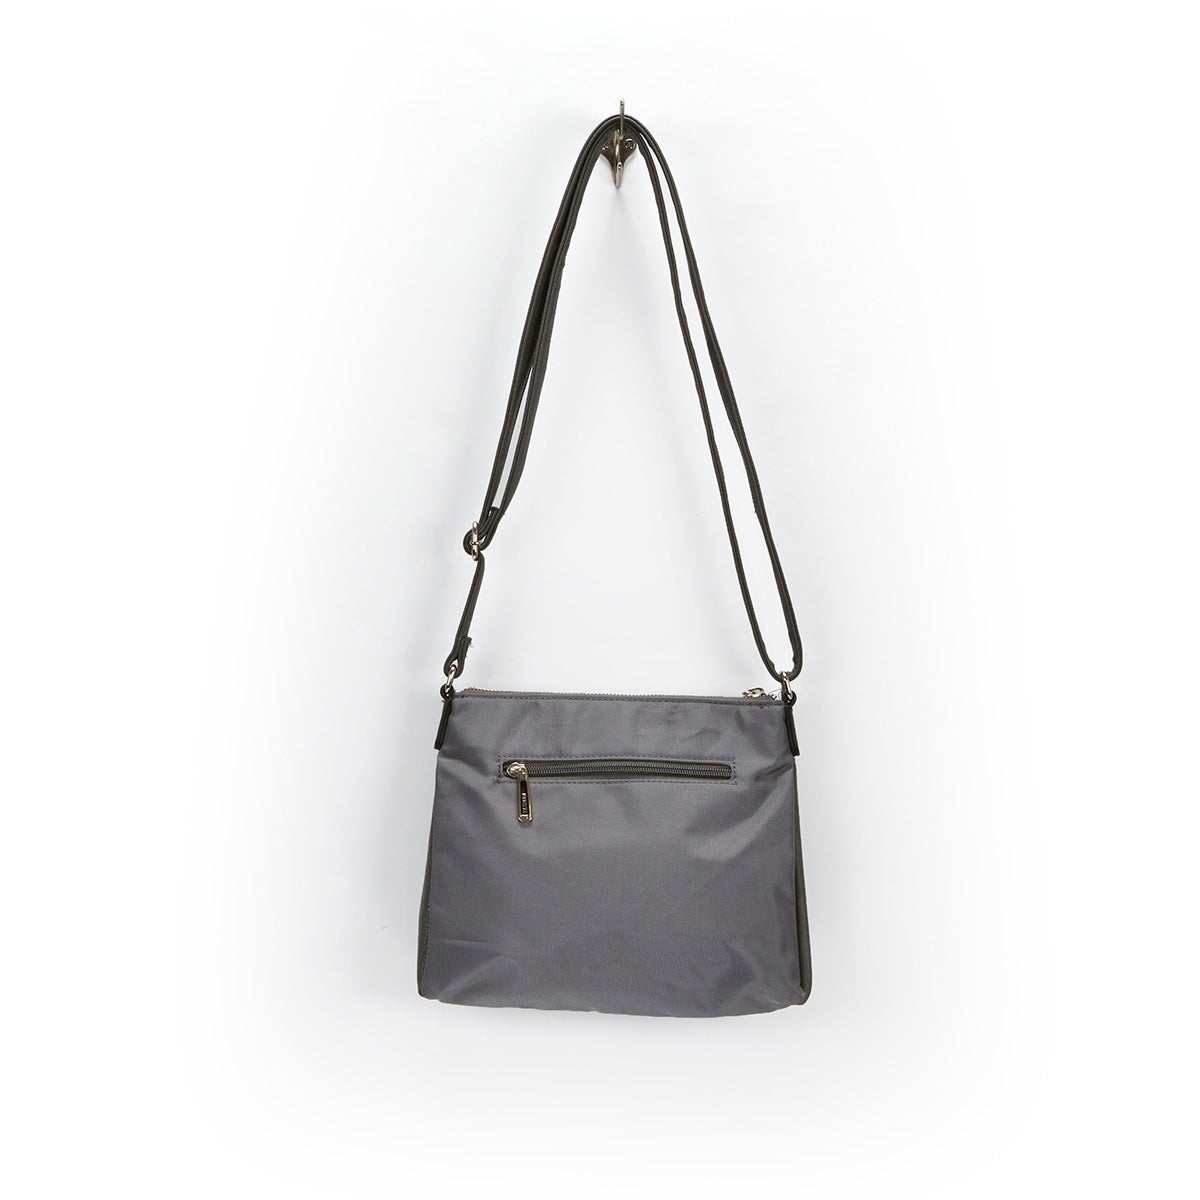 Lds grey east west cross body bag